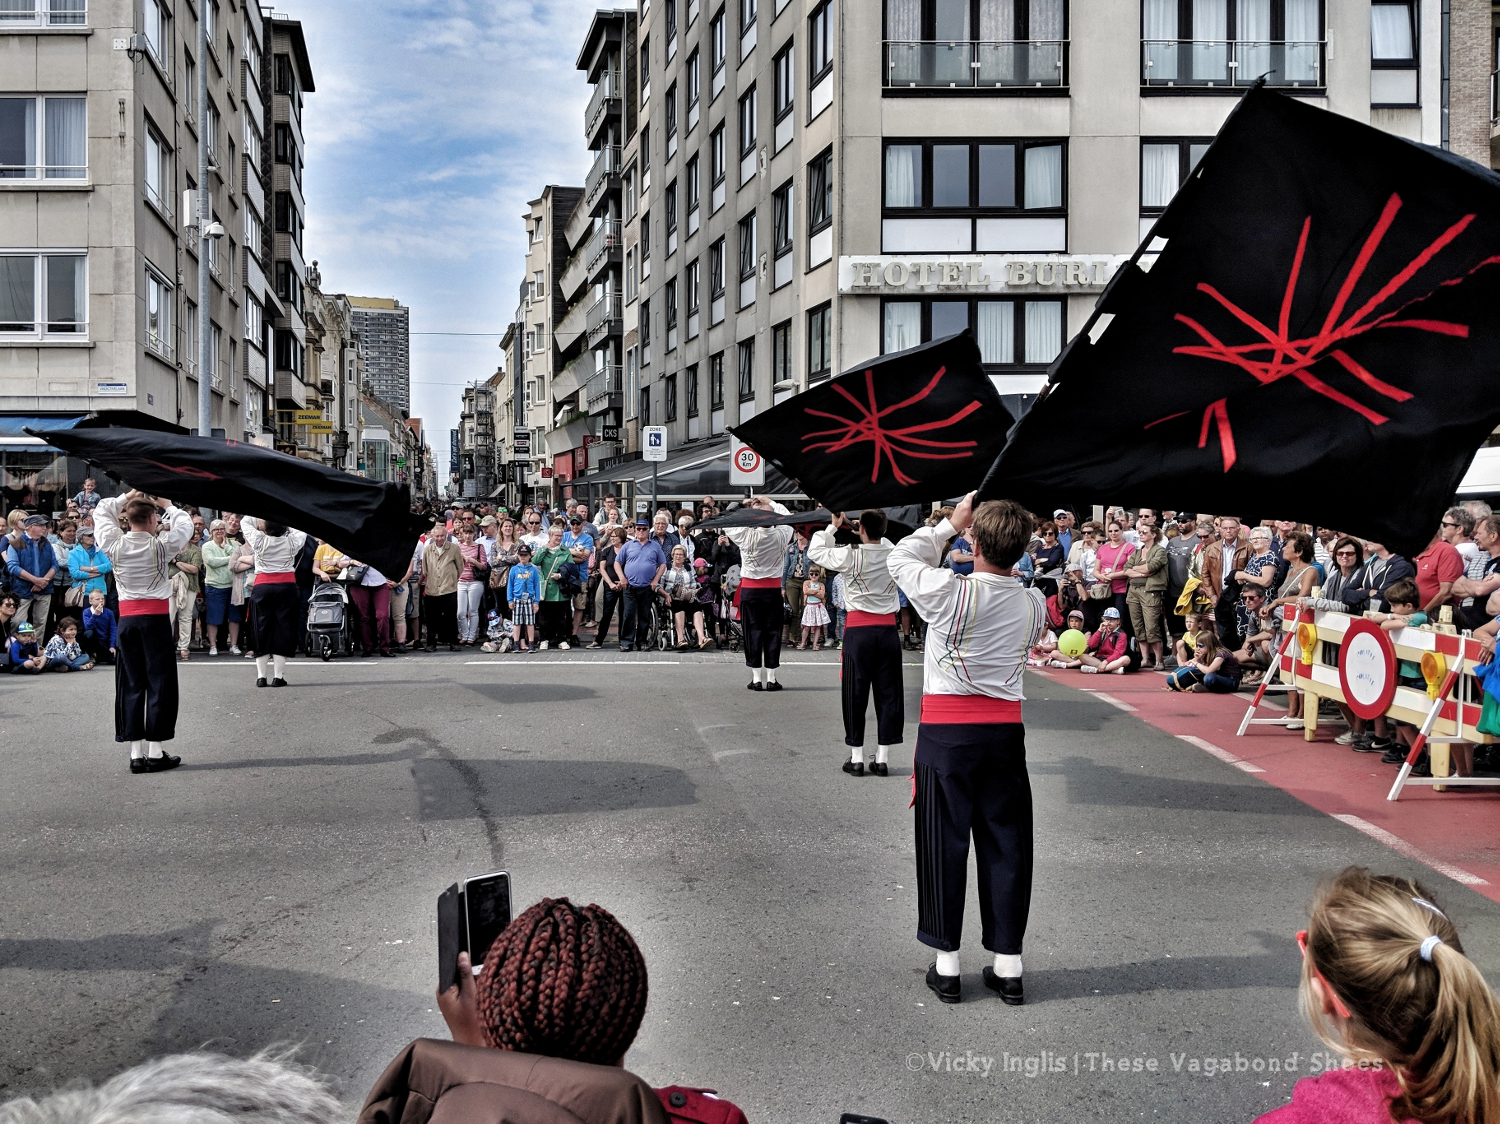 ostend_flag_dancers_small